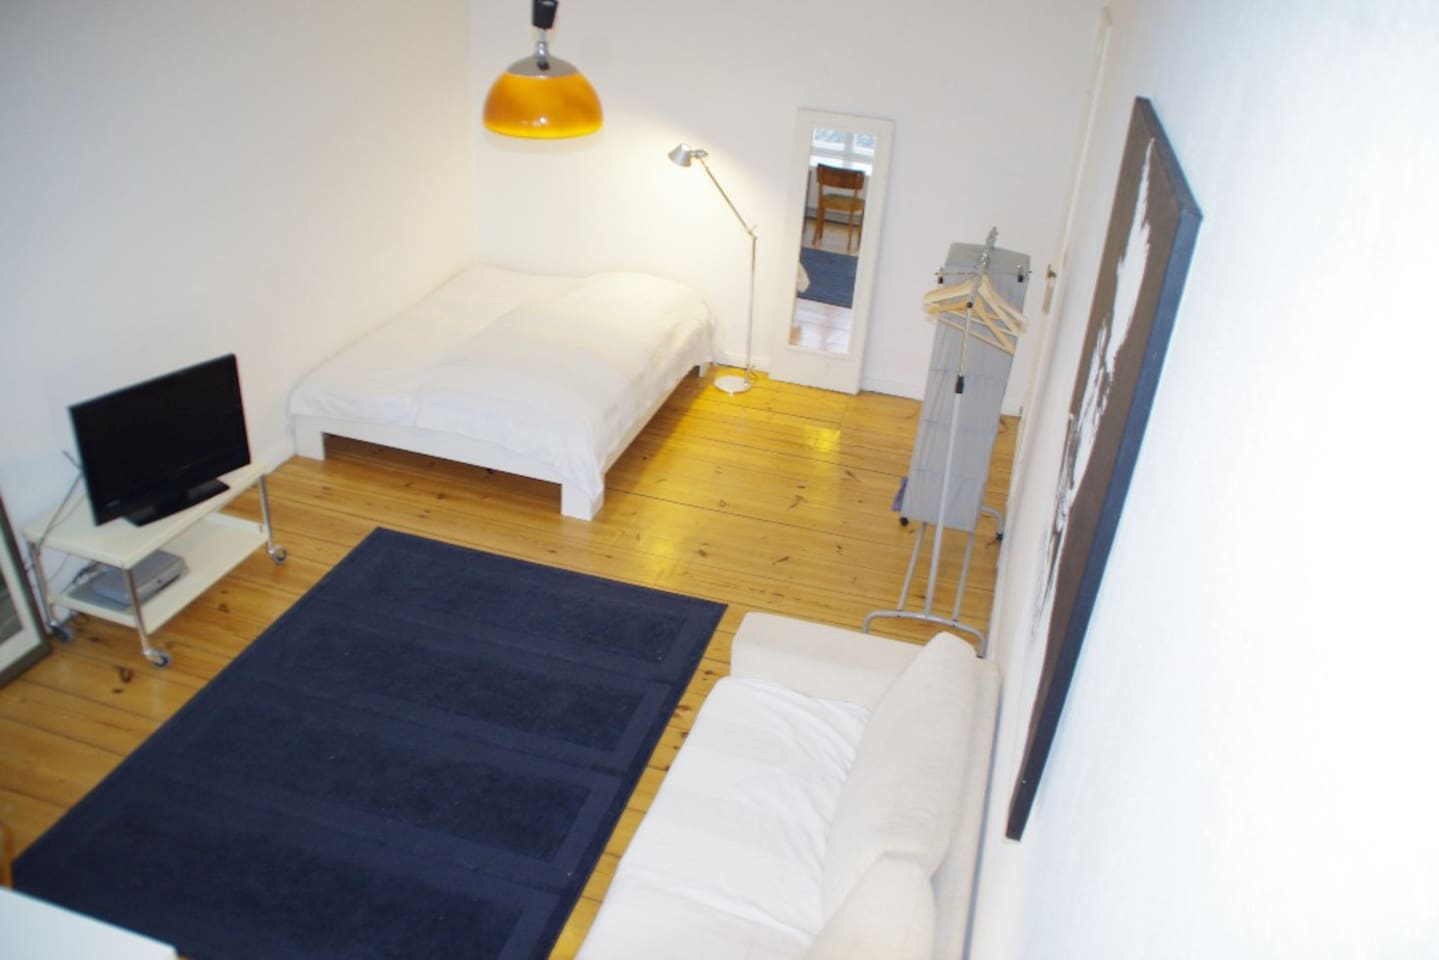 The offered room. Roomsize is 25m². Height of ceiling is 3,50 m. Room is lockable.